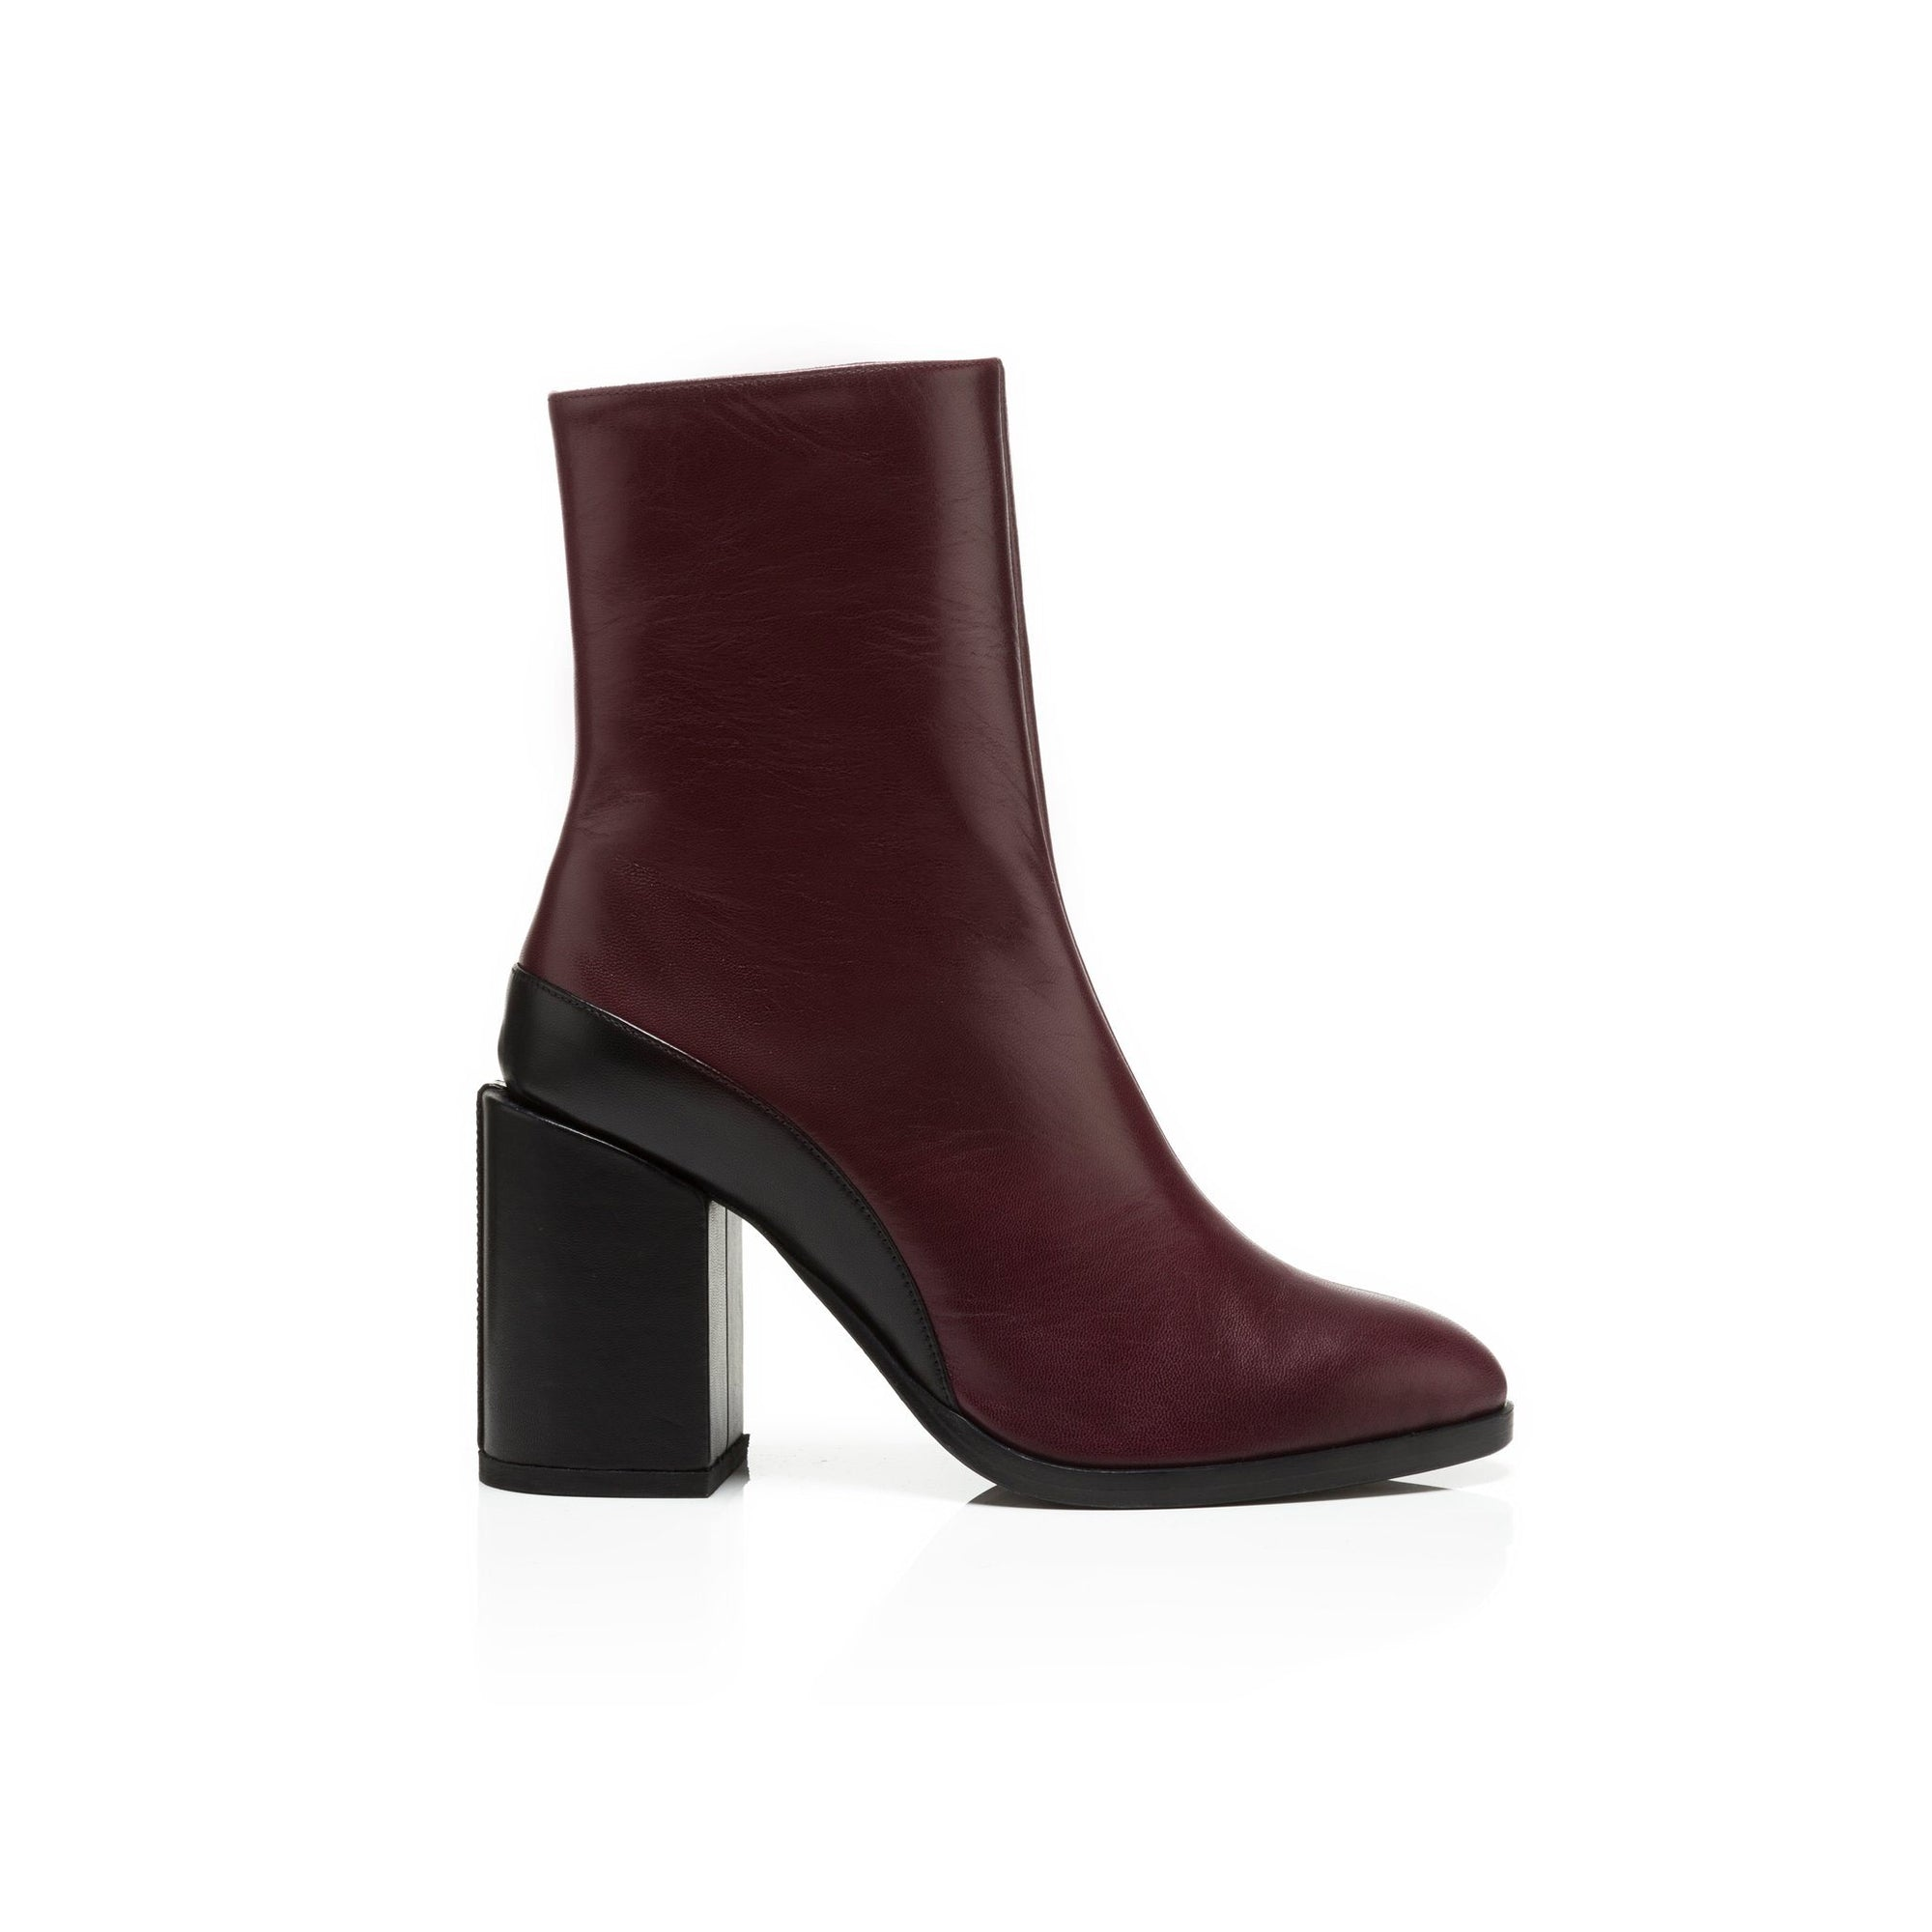 9a49befa762262 Leather block heel ankle boots